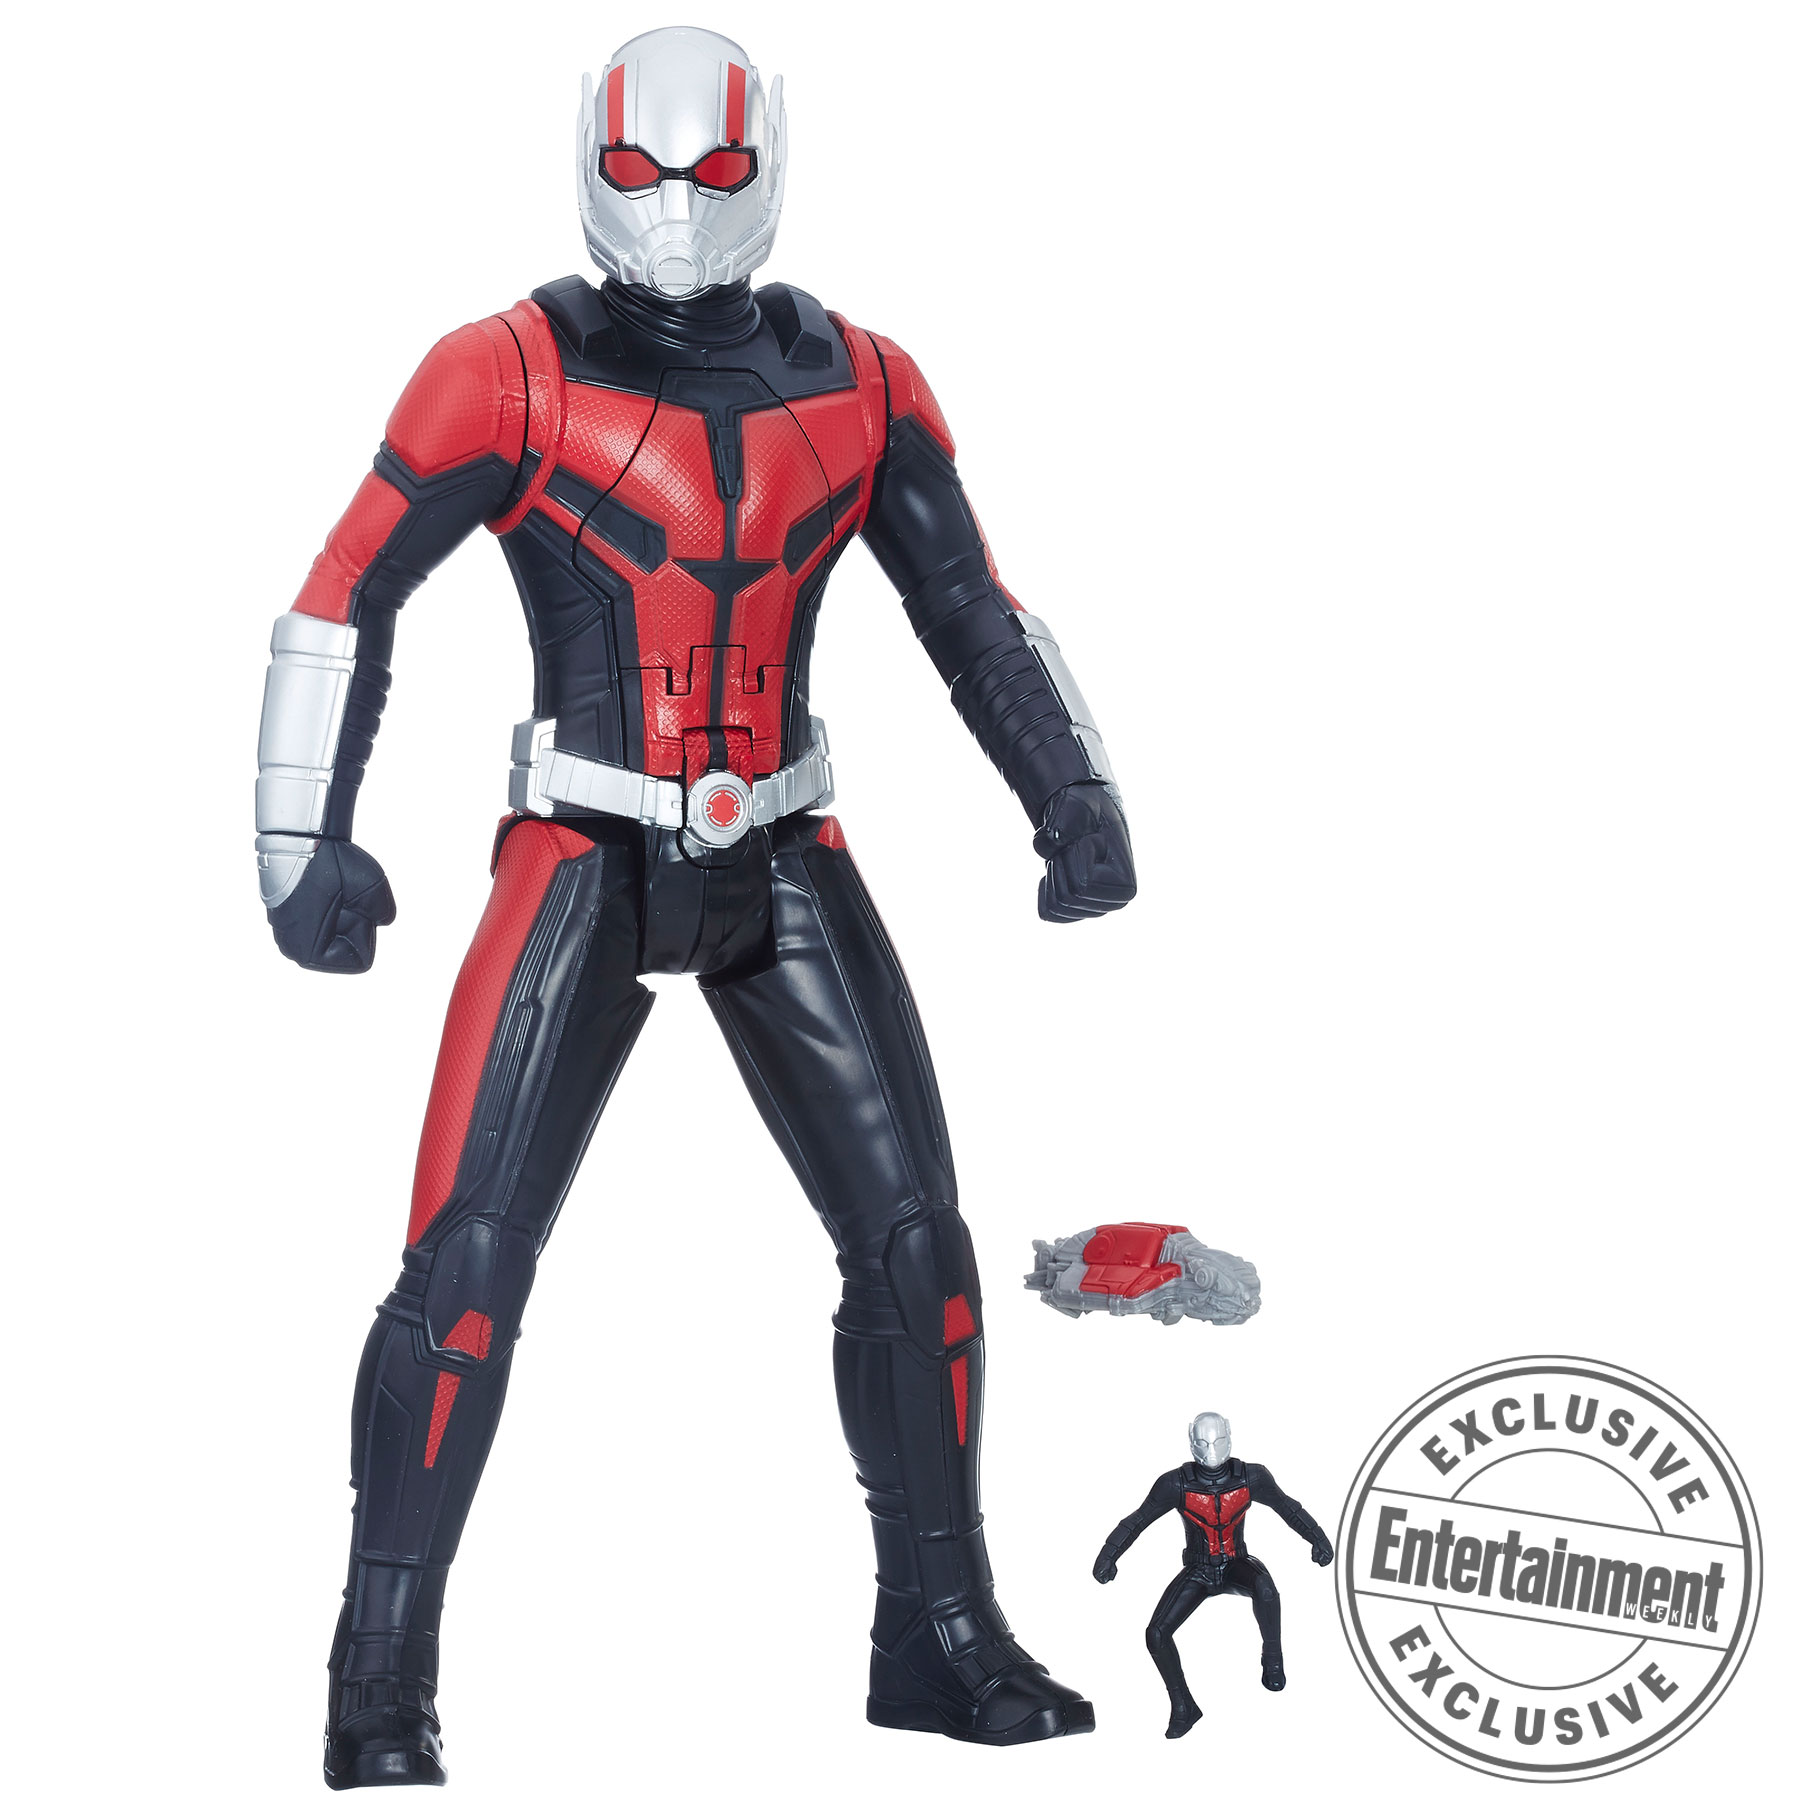 Shrink and Strike Ant-Man Figure